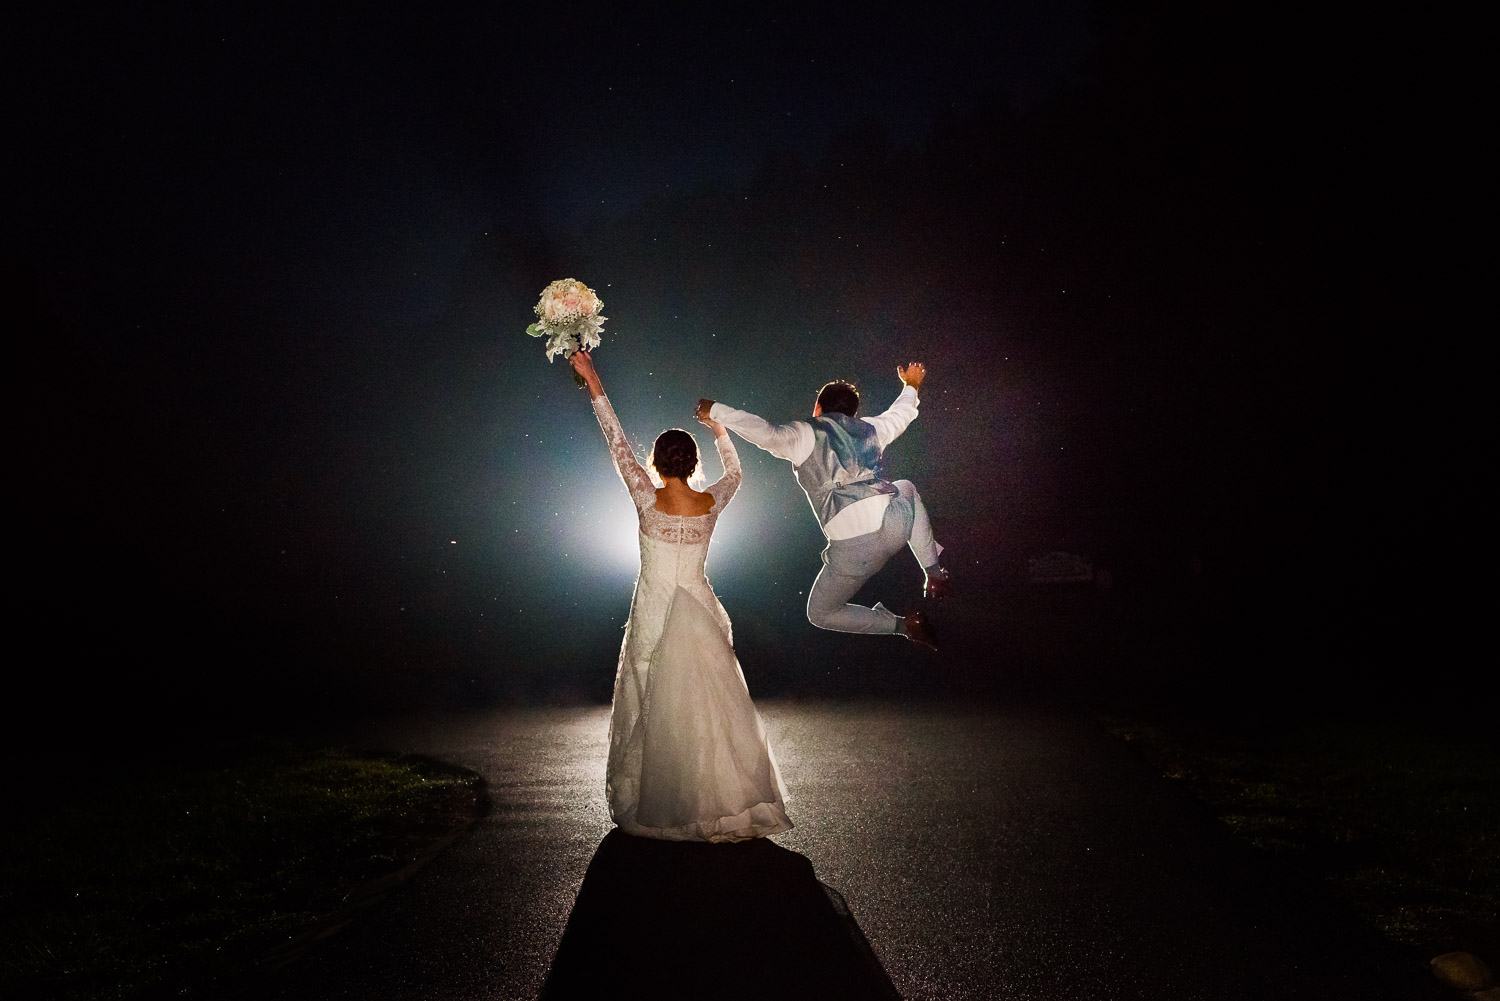 bride with flowers raised in her left hand holding her groom's hand as he jumps high and clicks his heels together happily heading off into their future at night.